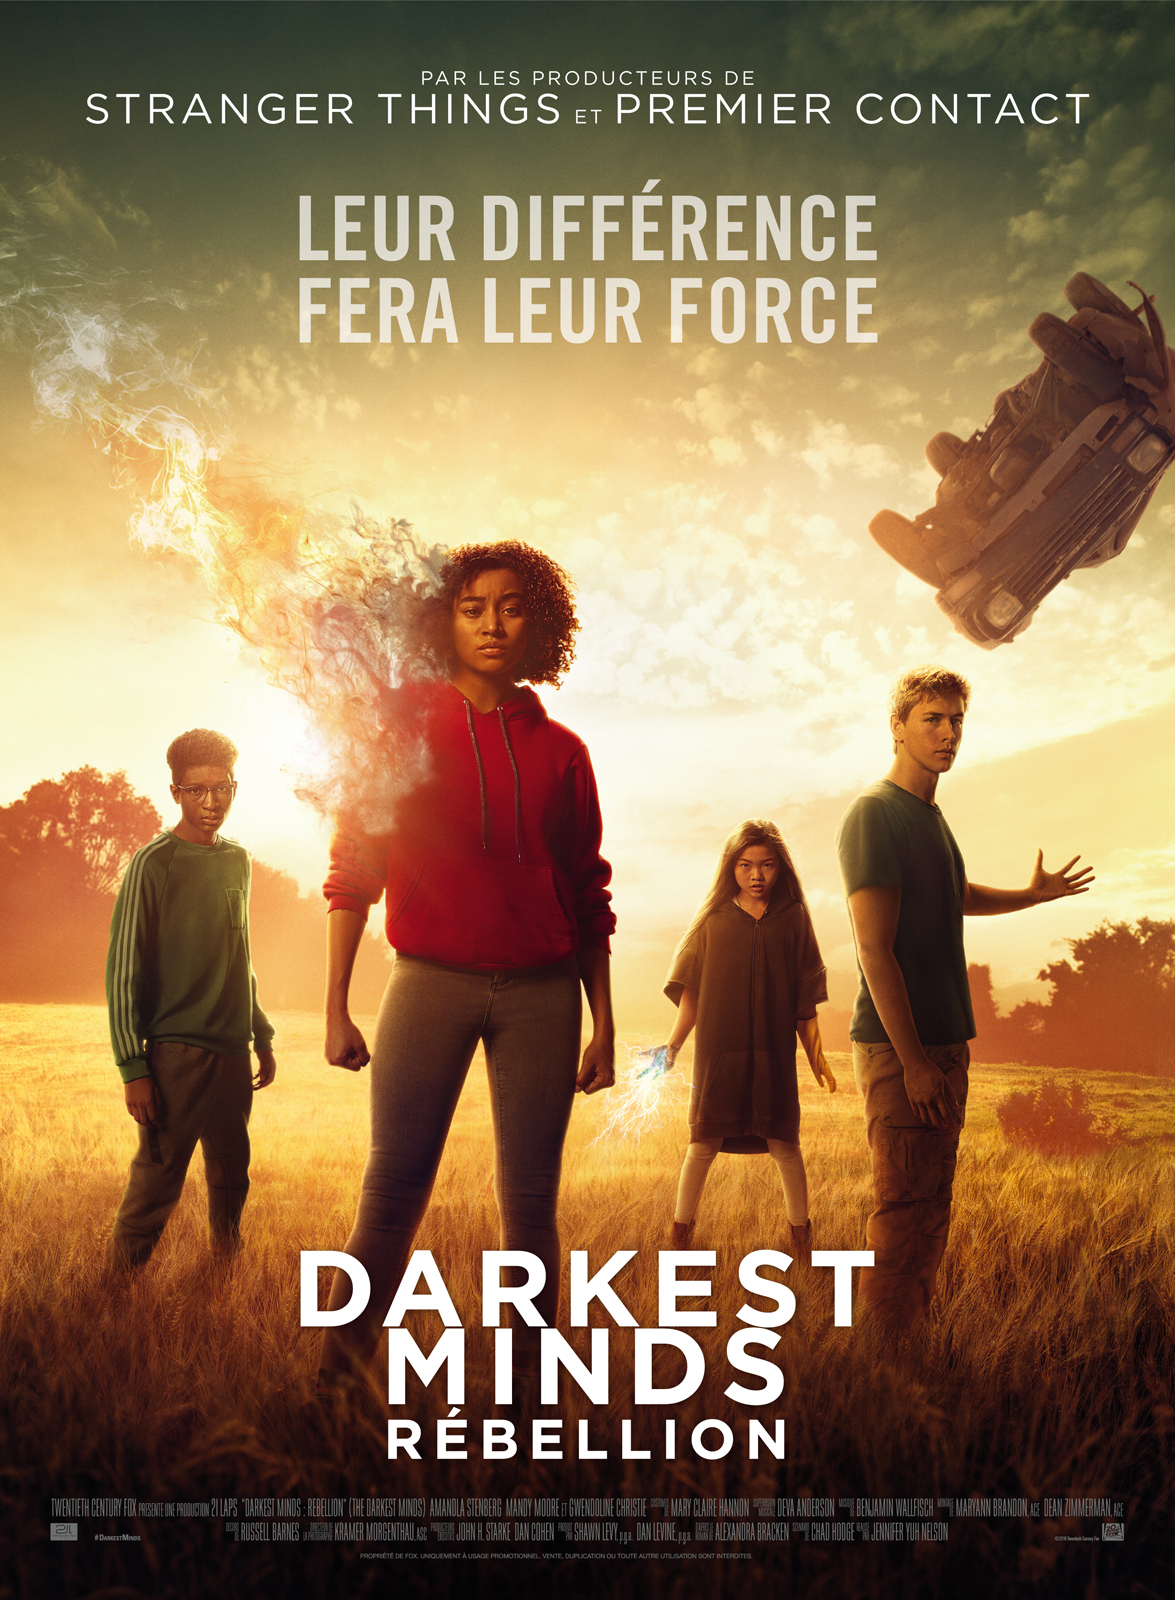 Darkest Minds : Un teen movie pas révolutionnaire